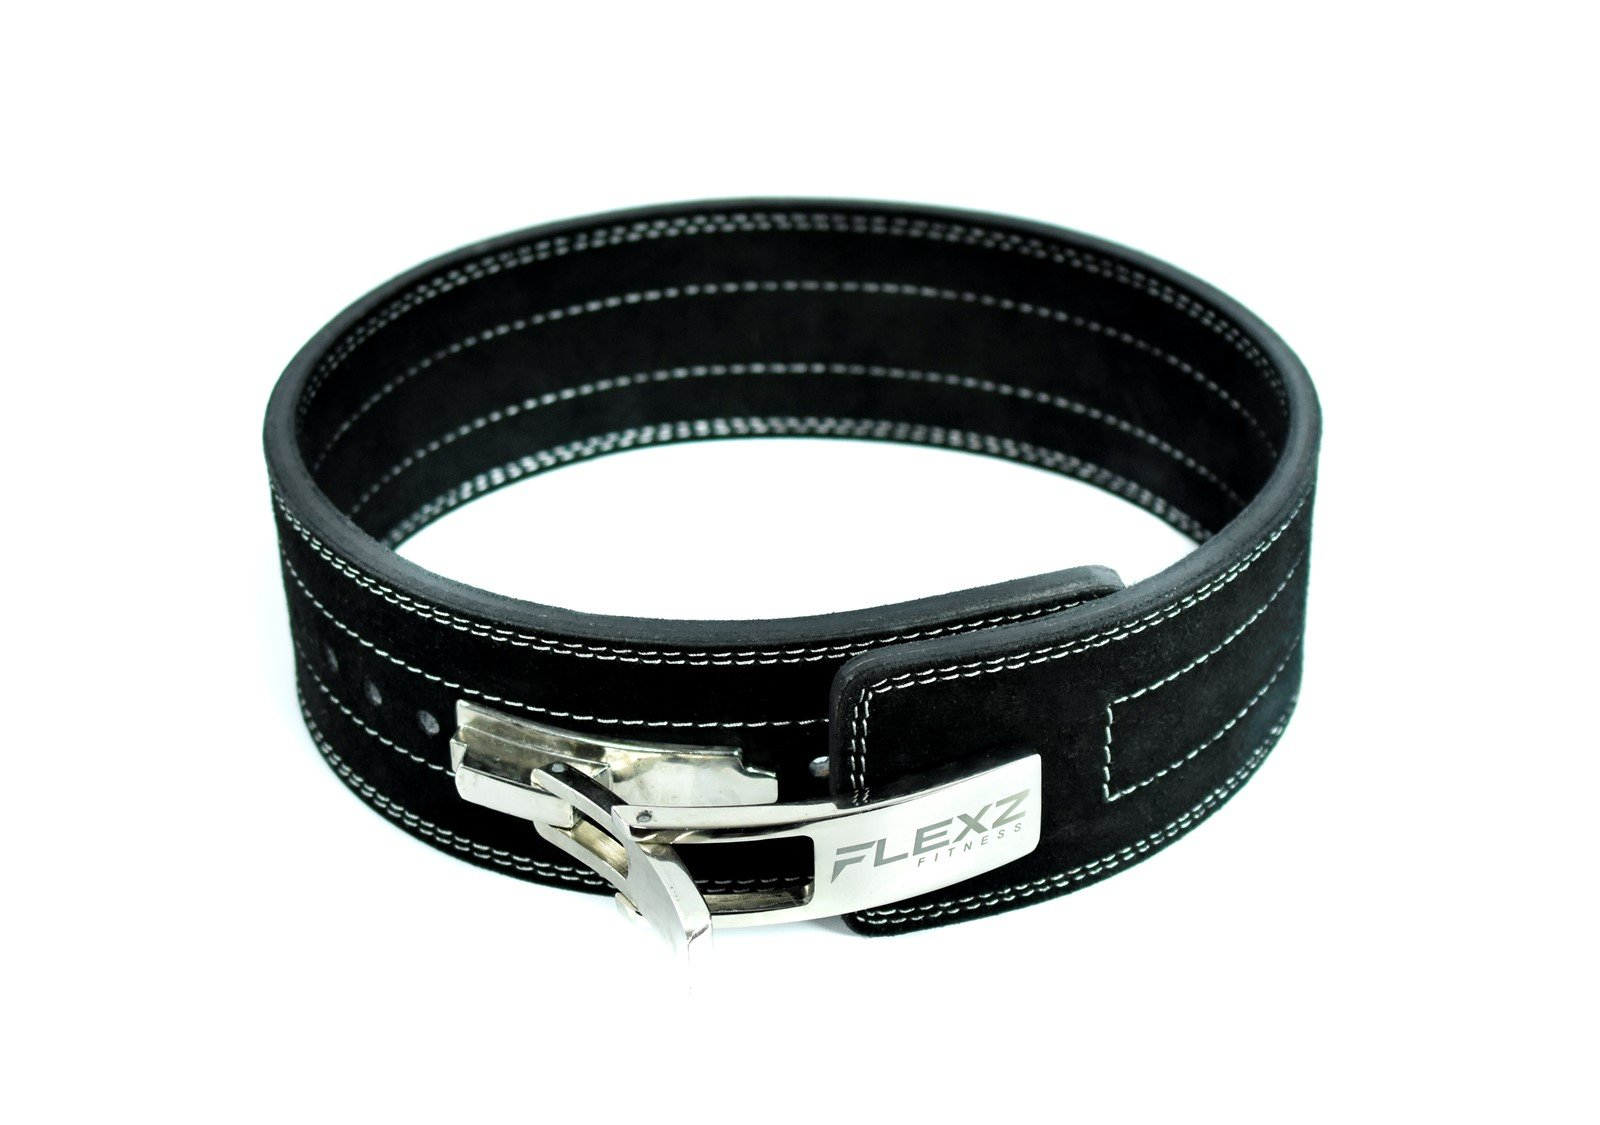 Flexz Fitness Lever Buckle Powerlifting Belt 10mm Weight Lifting Black Medium by Flexz Fitness (Image #2)